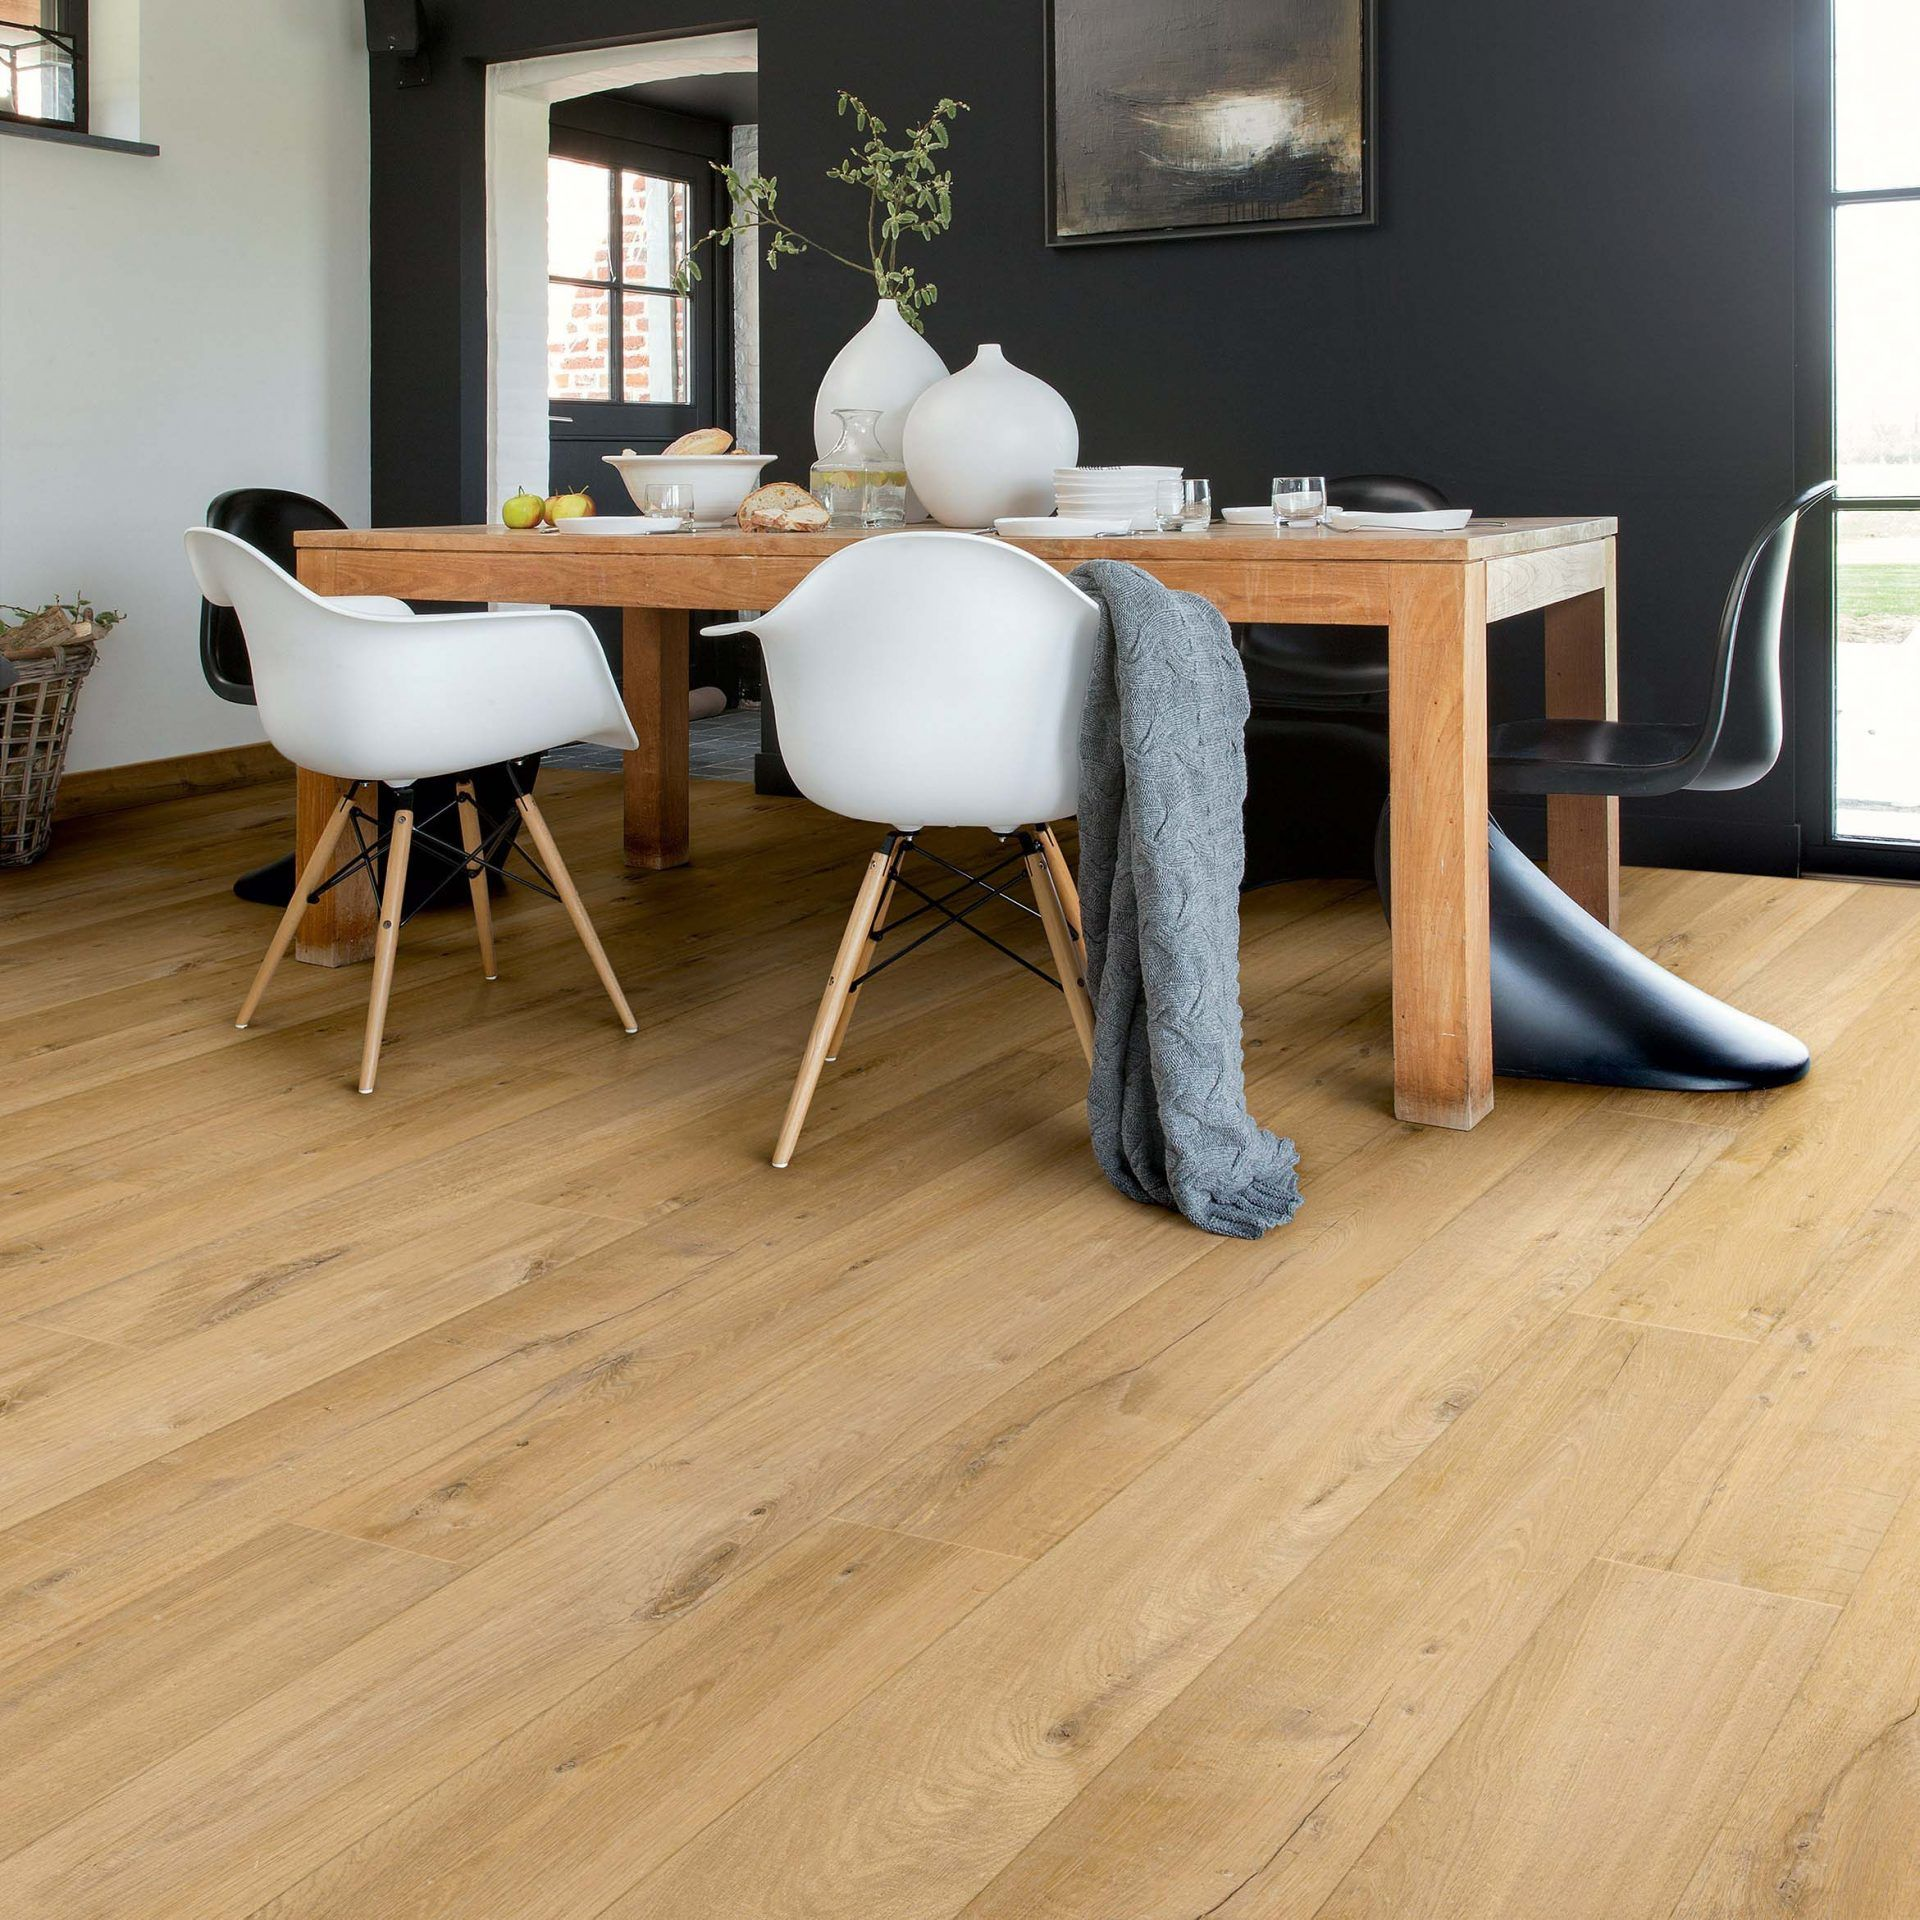 Laminate Flooring Our Pick of the Best Choices